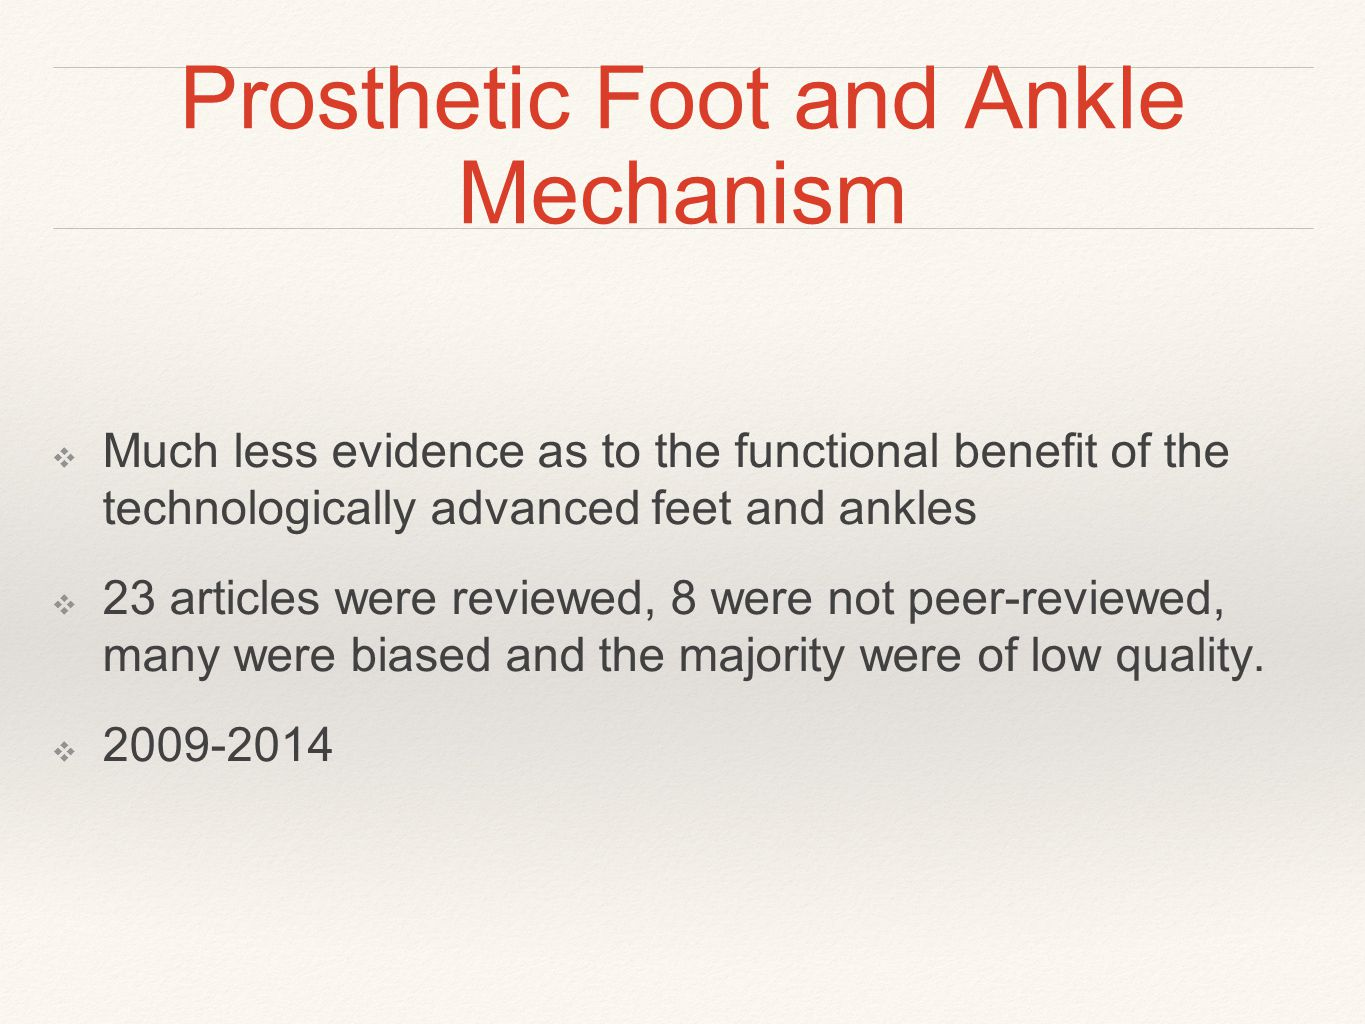 Prosthetic Foot and Ankle Mechanism ❖ Much less evidence as to the functional benefit of the technologically advanced feet and ankles ❖ 23 articles were reviewed, 8 were not peer-reviewed, many were biased and the majority were of low quality.